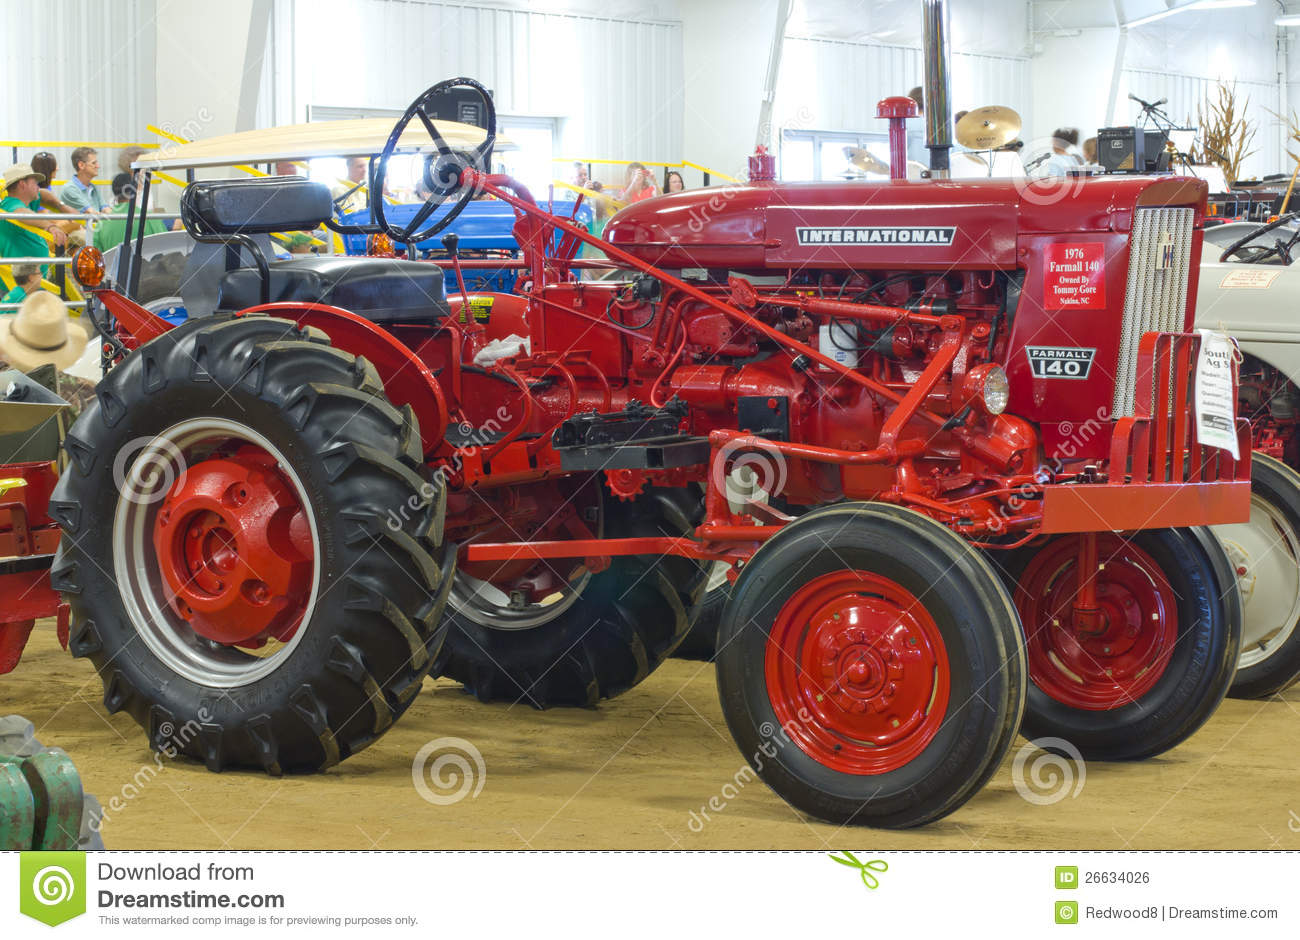 Farmall 140 Tractor : International farmall model tractor editorial photo